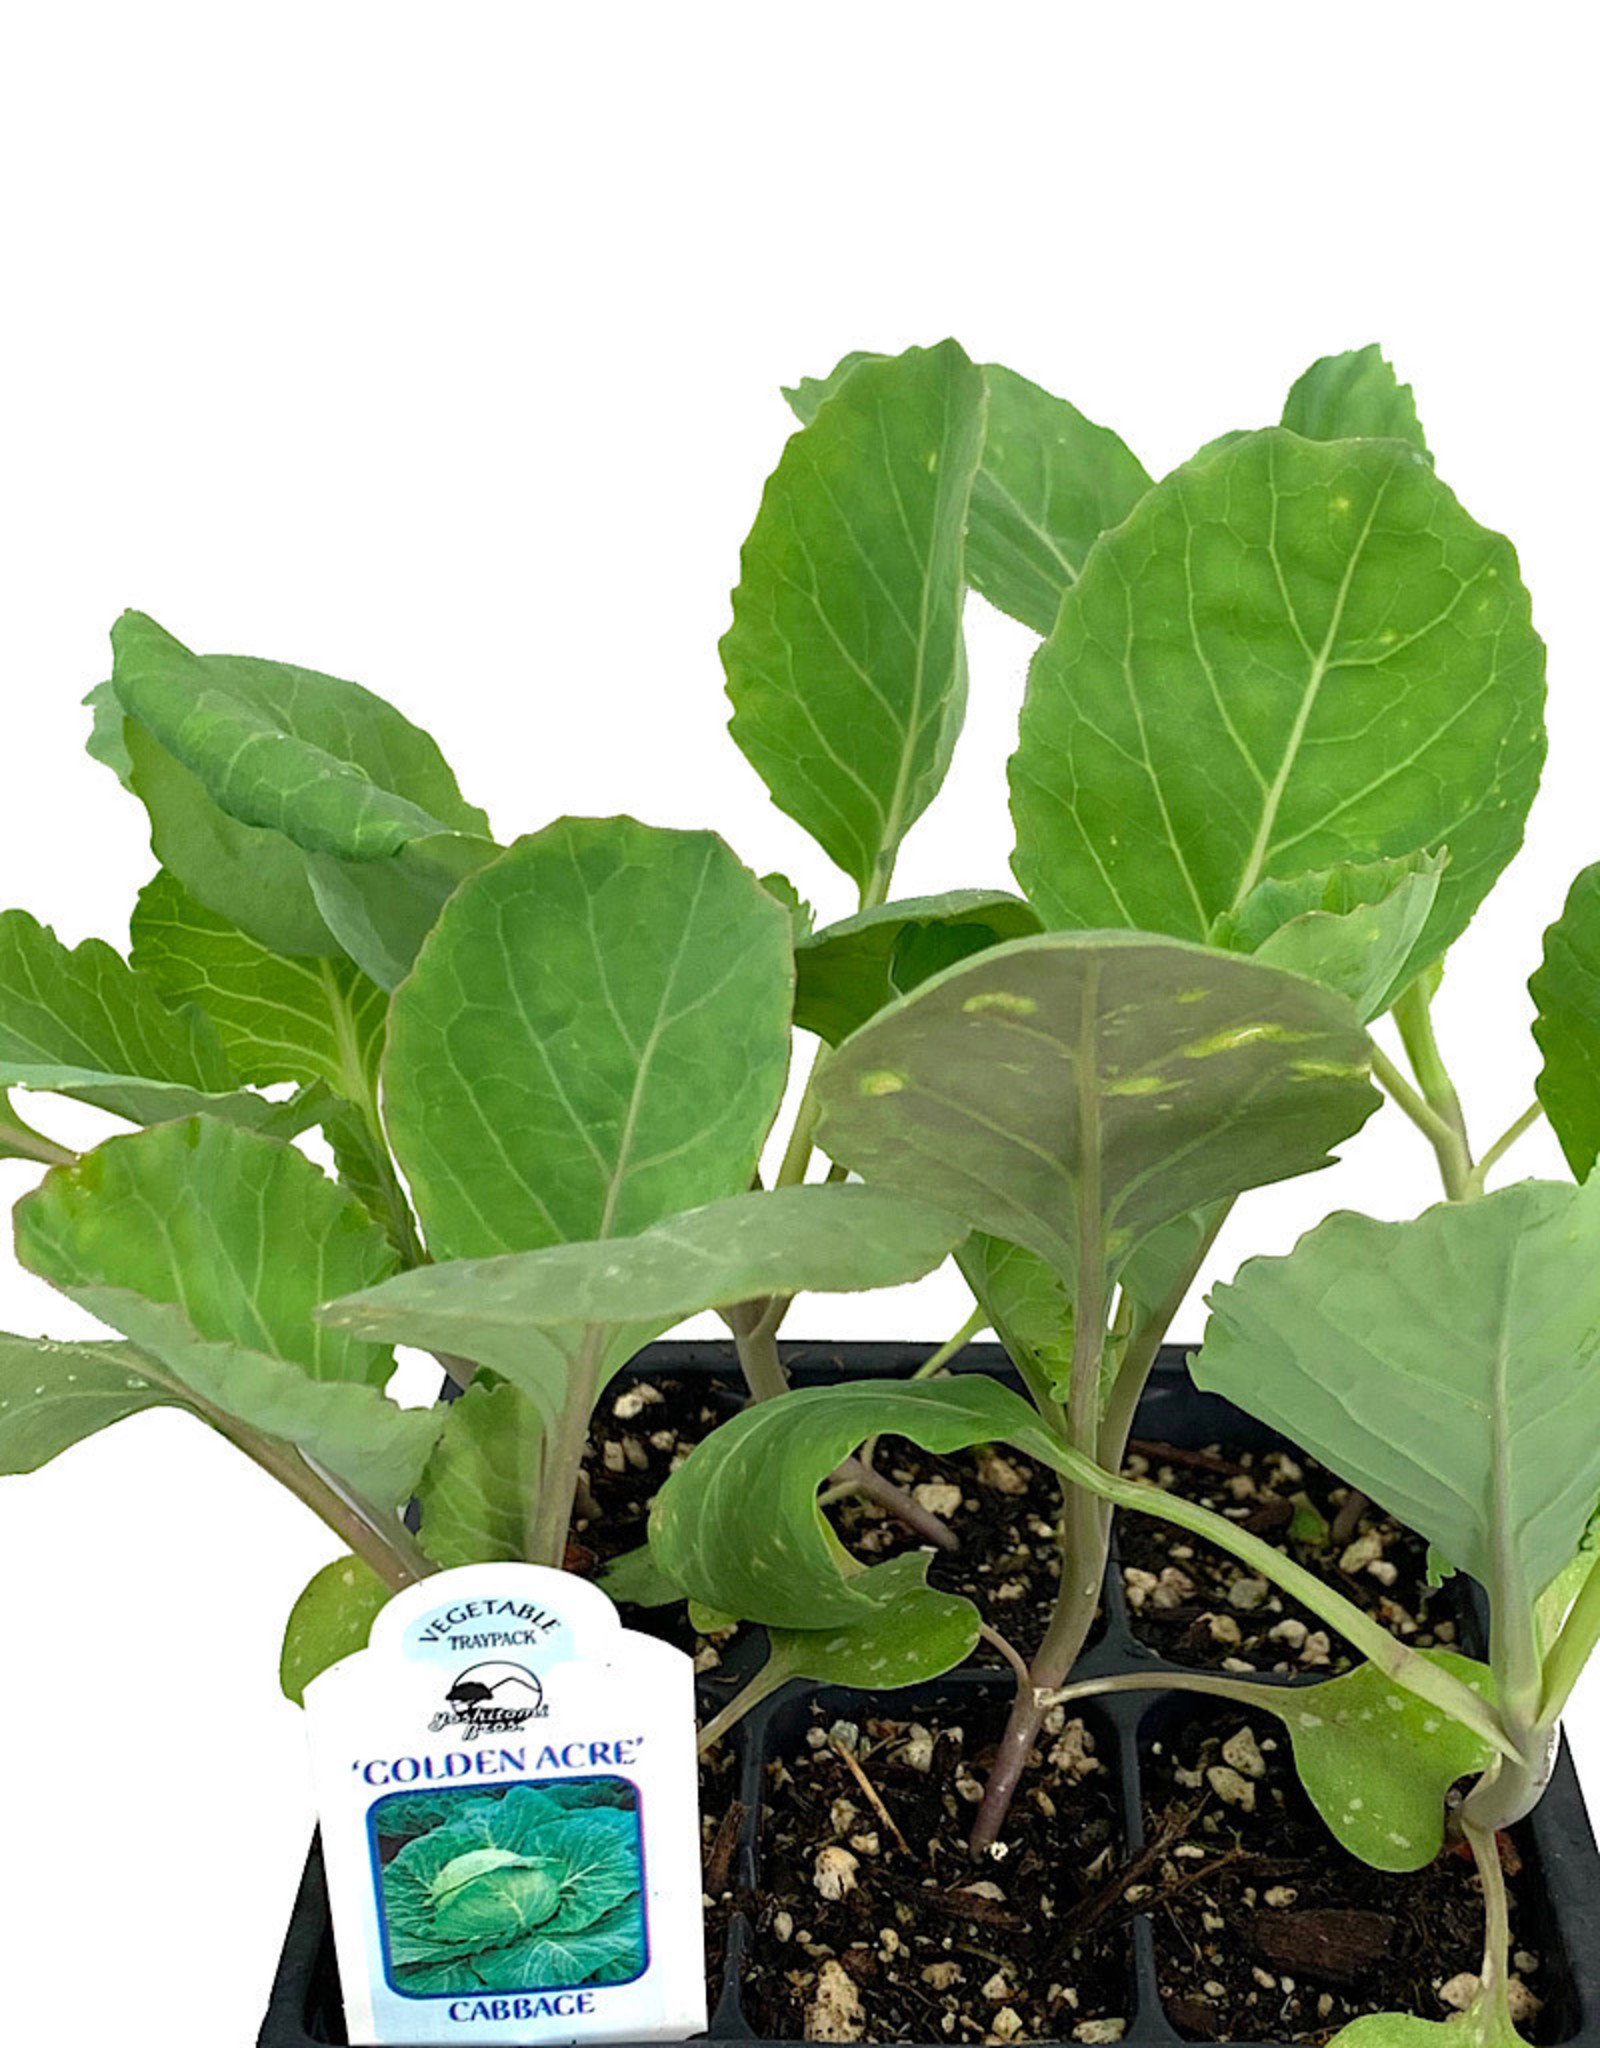 Cabbage 'Golden Acre' Traypack